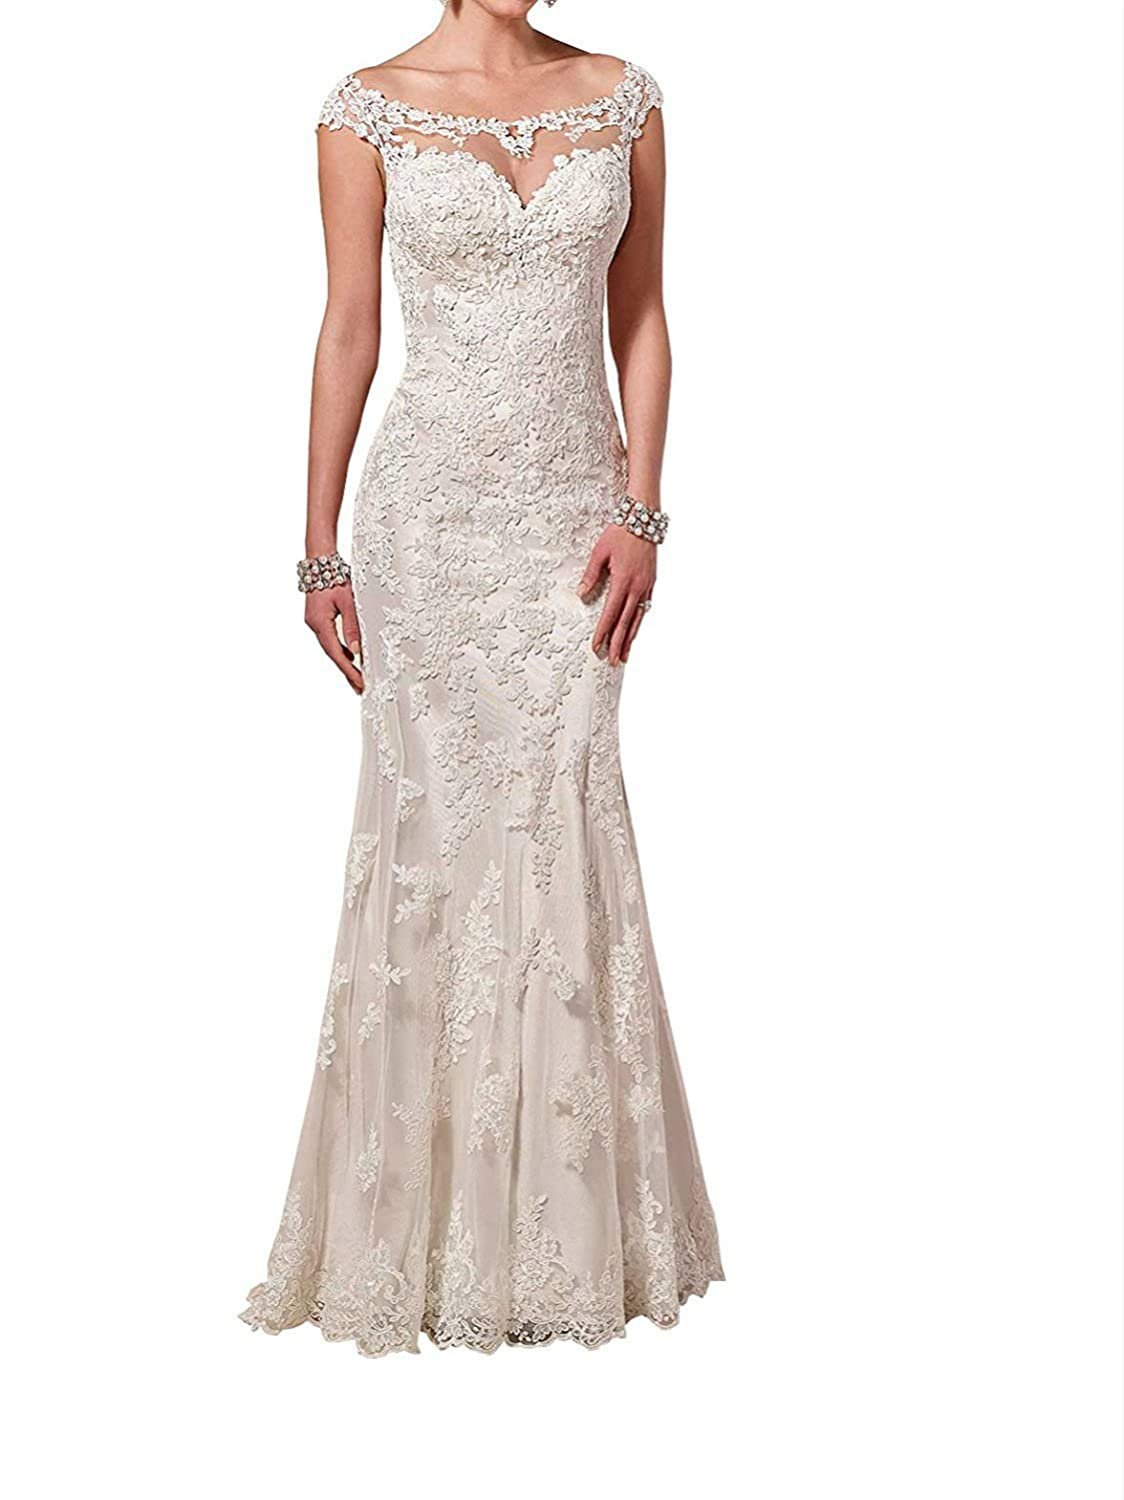 Vepycly Womens Elegant Wedding Dress Sexy Backless Sweetheart Lace